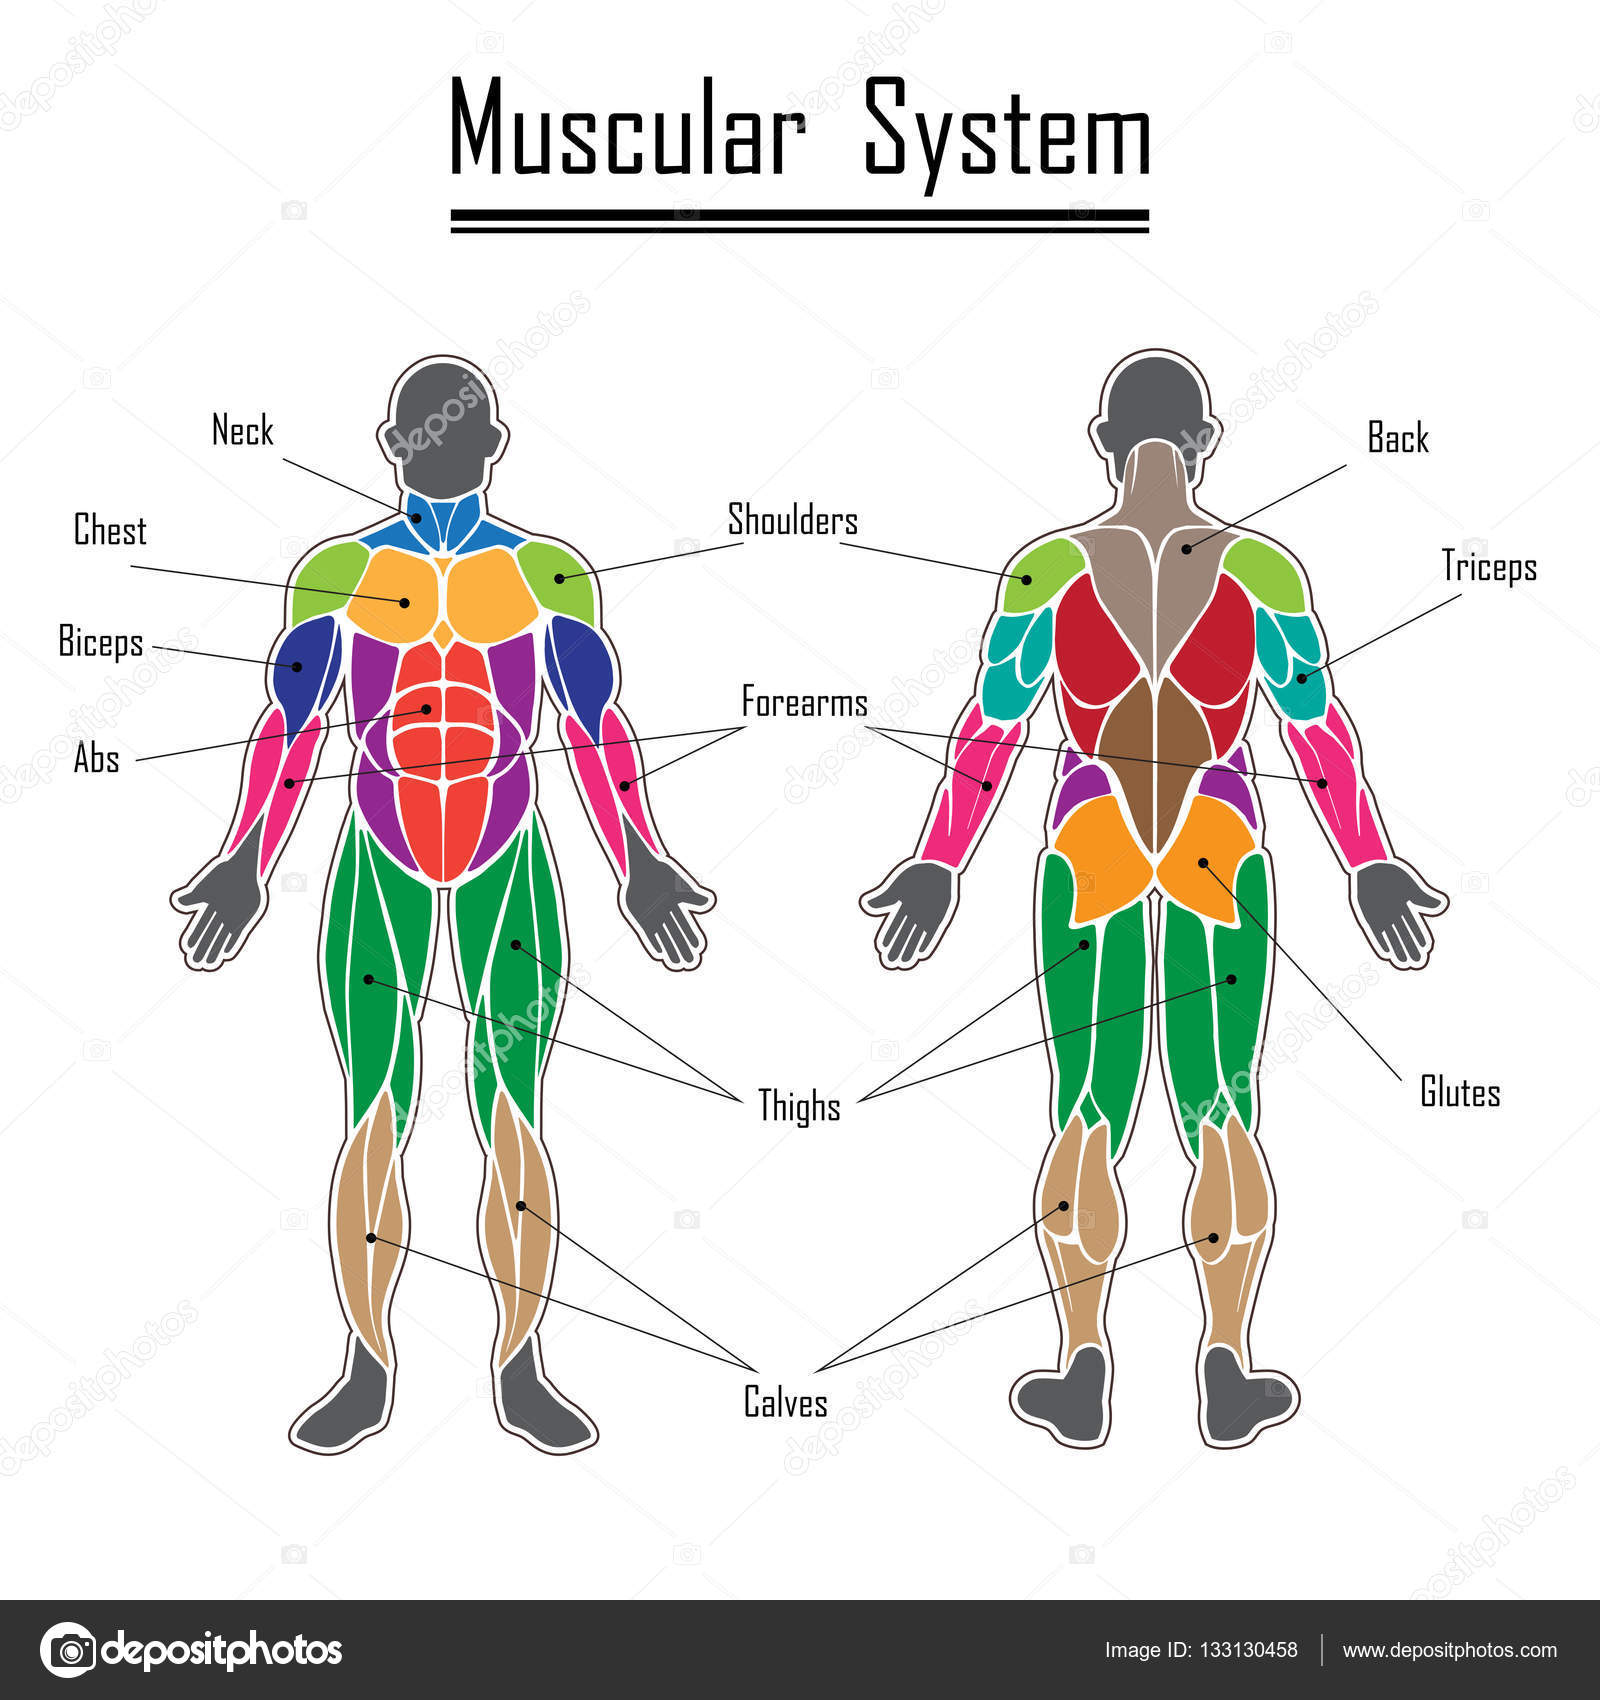 Human muscular system — Stock Vector © longquattro #133130458